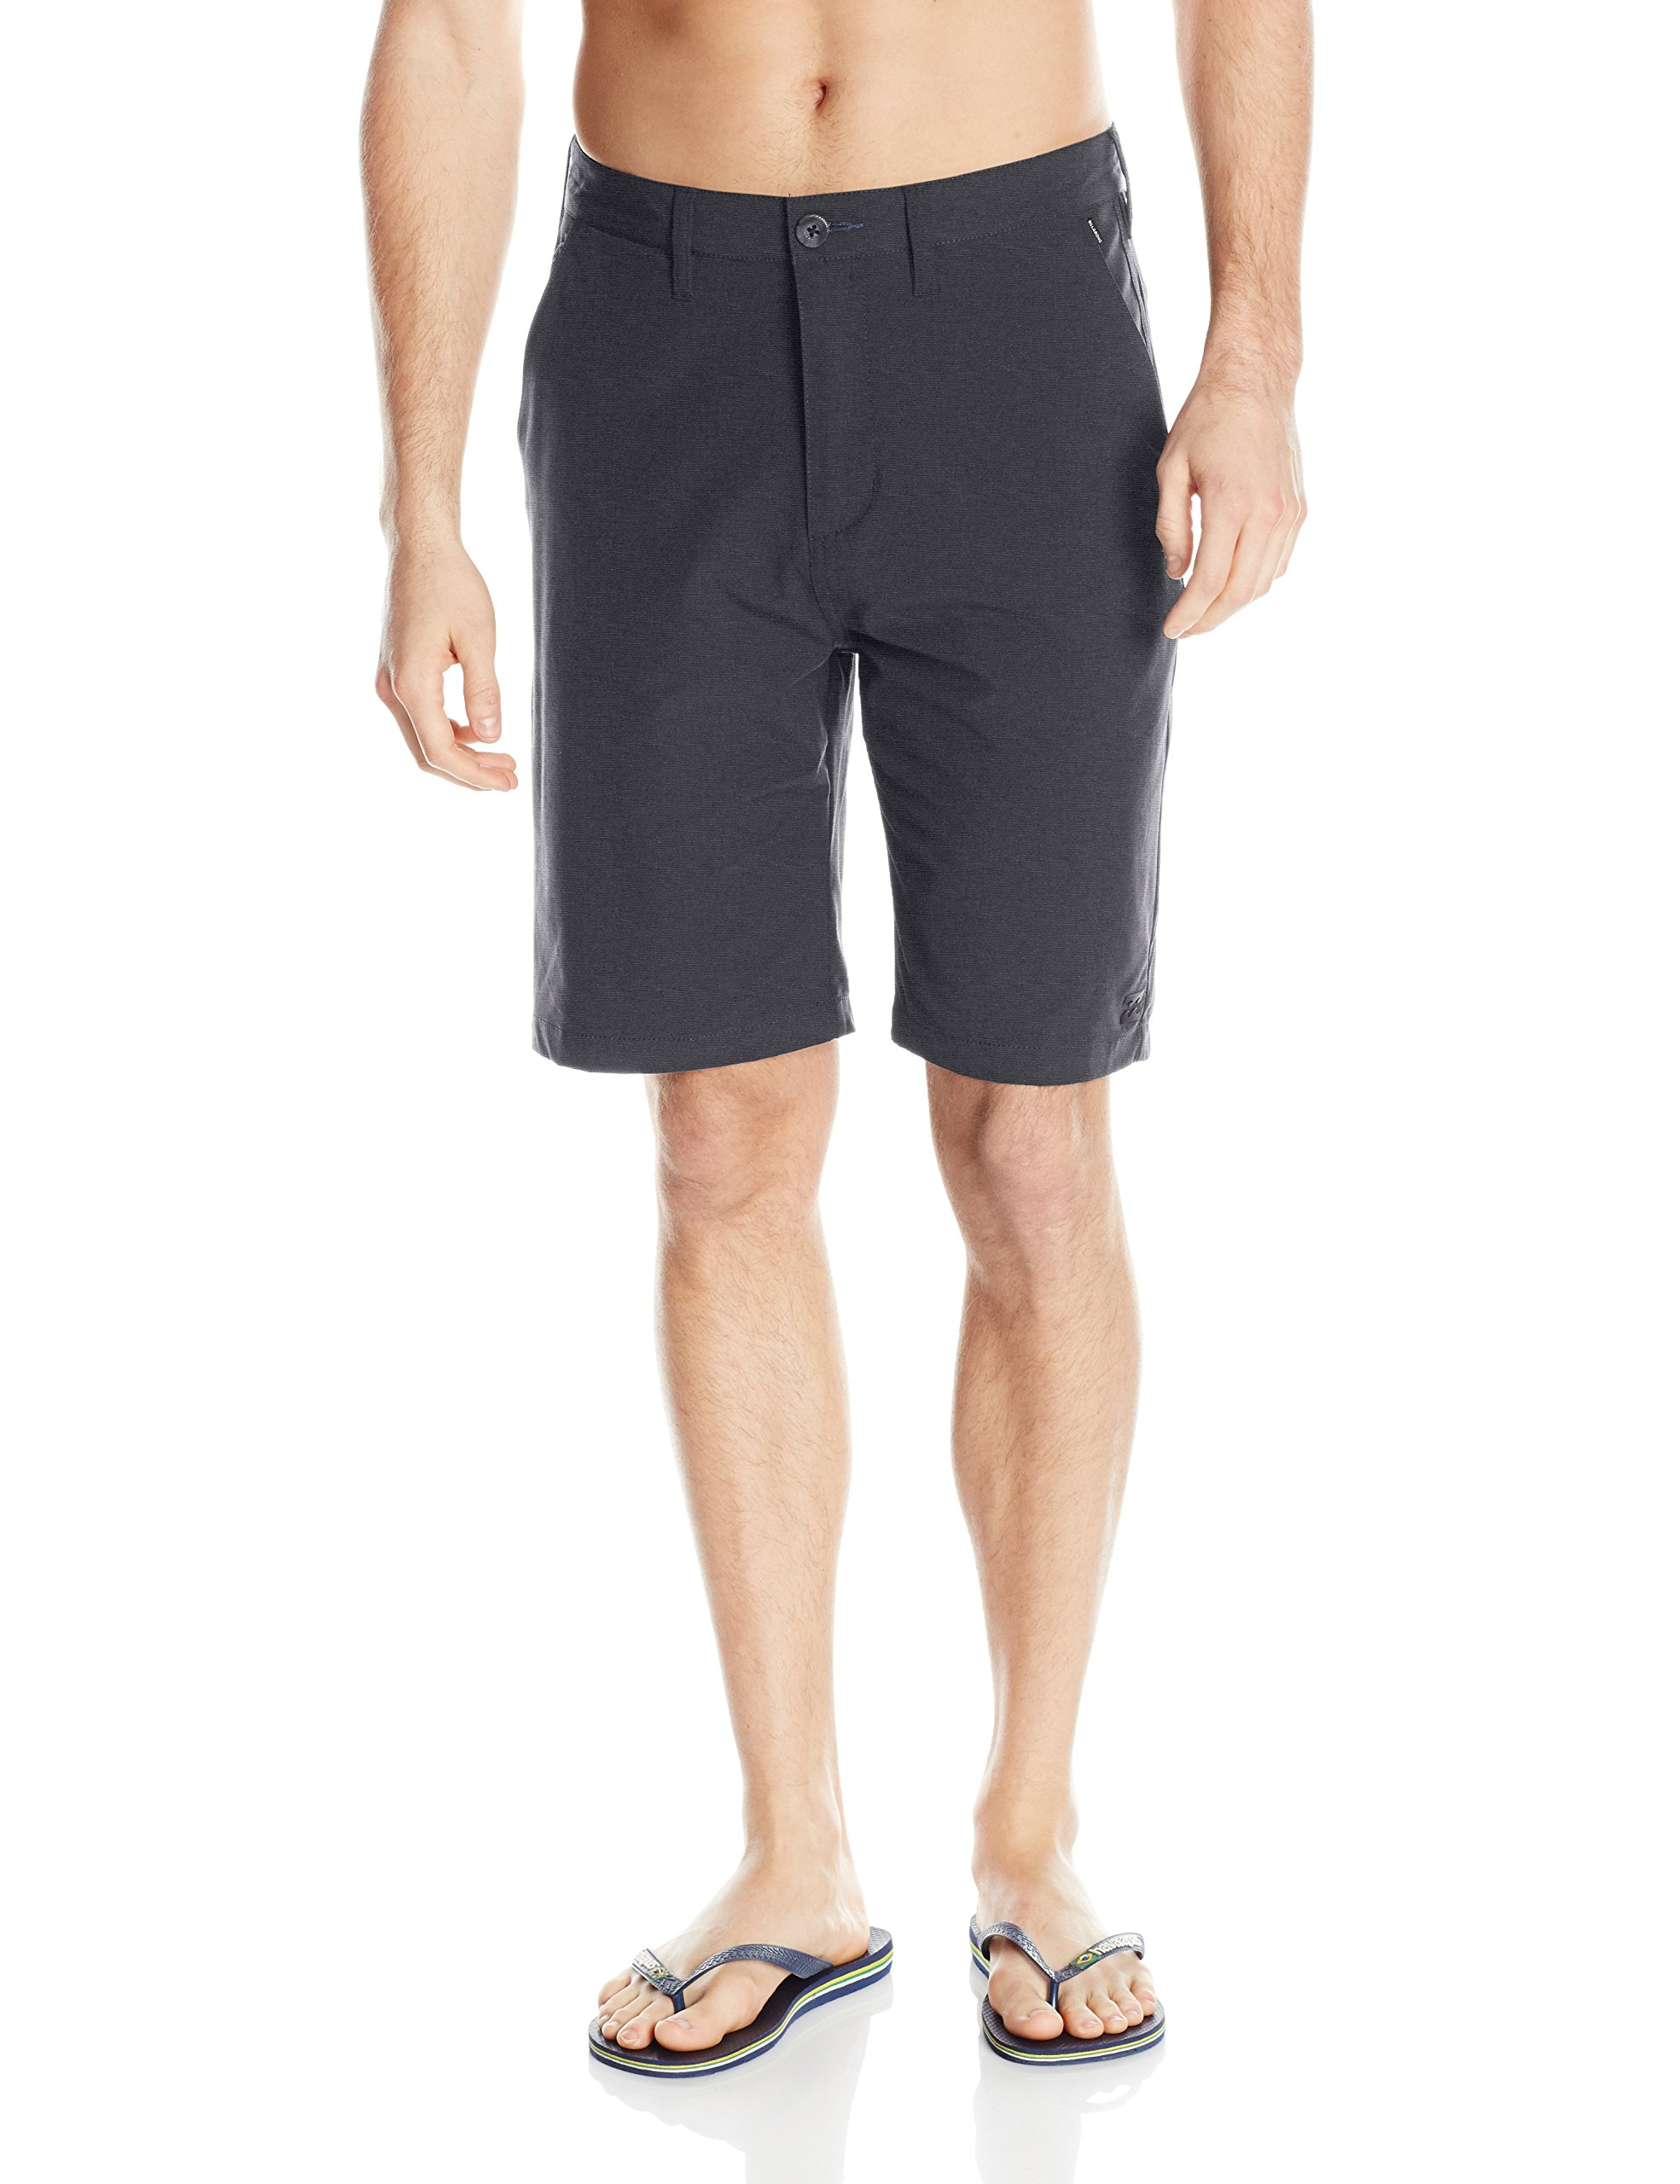 Billabong Men's Classic Hybrid Short, Asphalt, 34